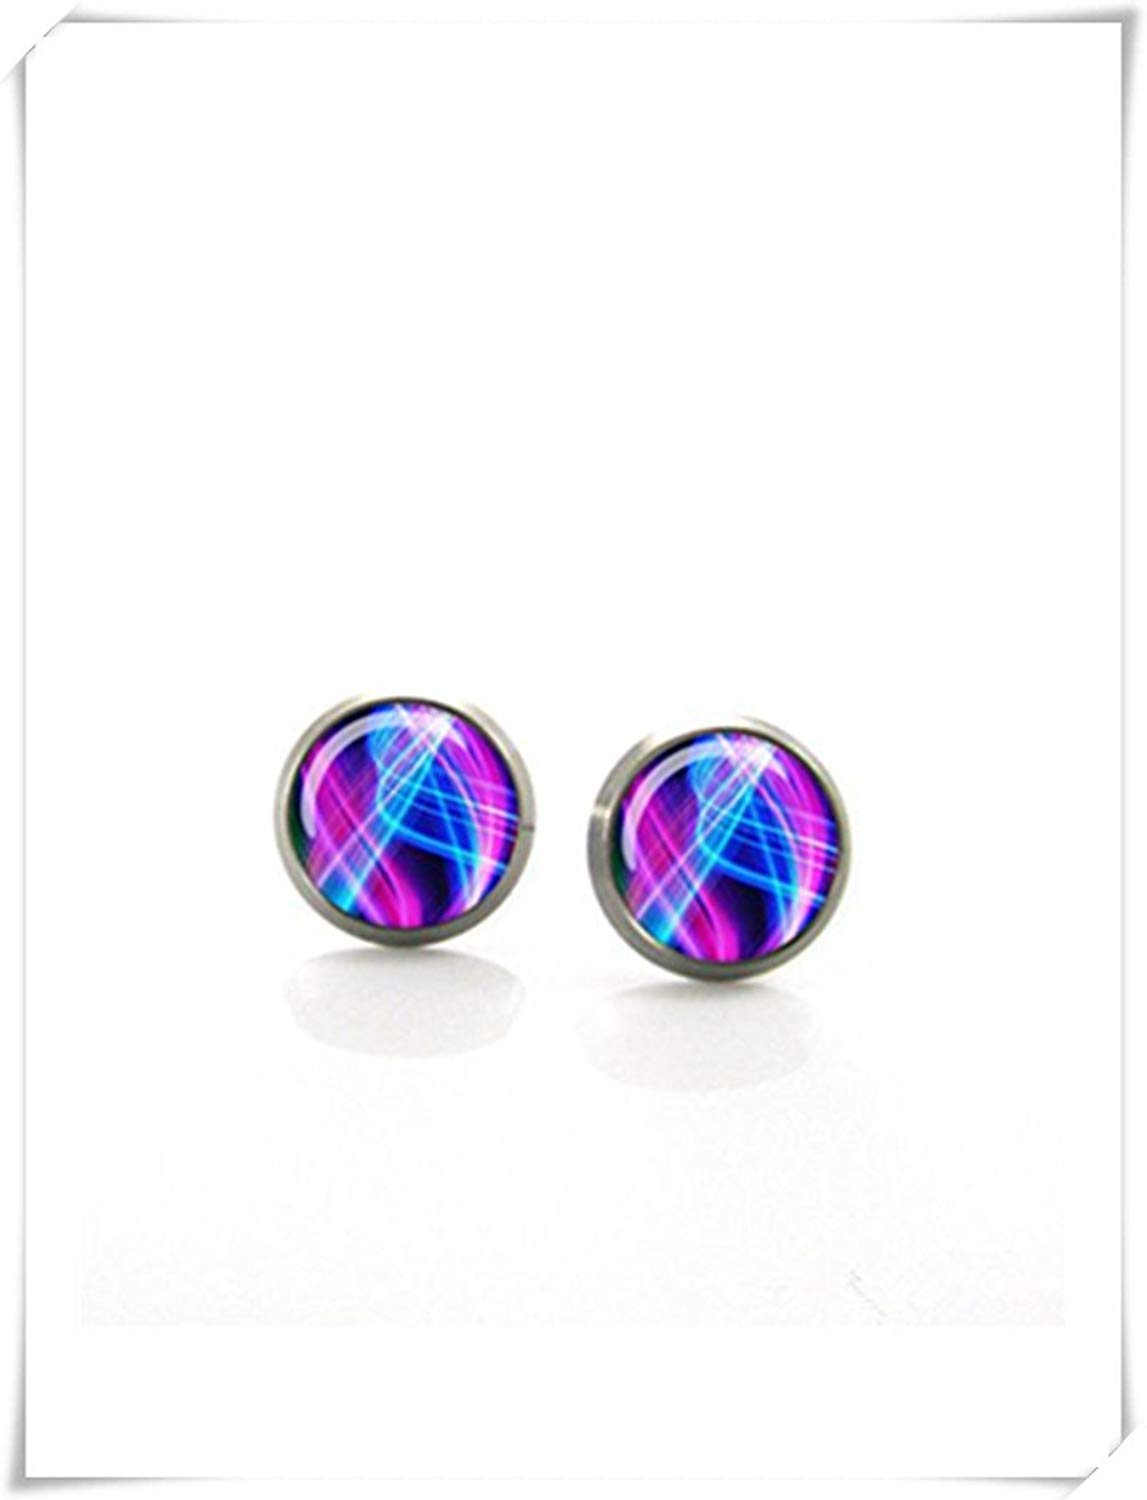 Hobbs Pink, Purple and Electric Blue Titanium Post Earrings | Hypoallergenic Earring Stud |